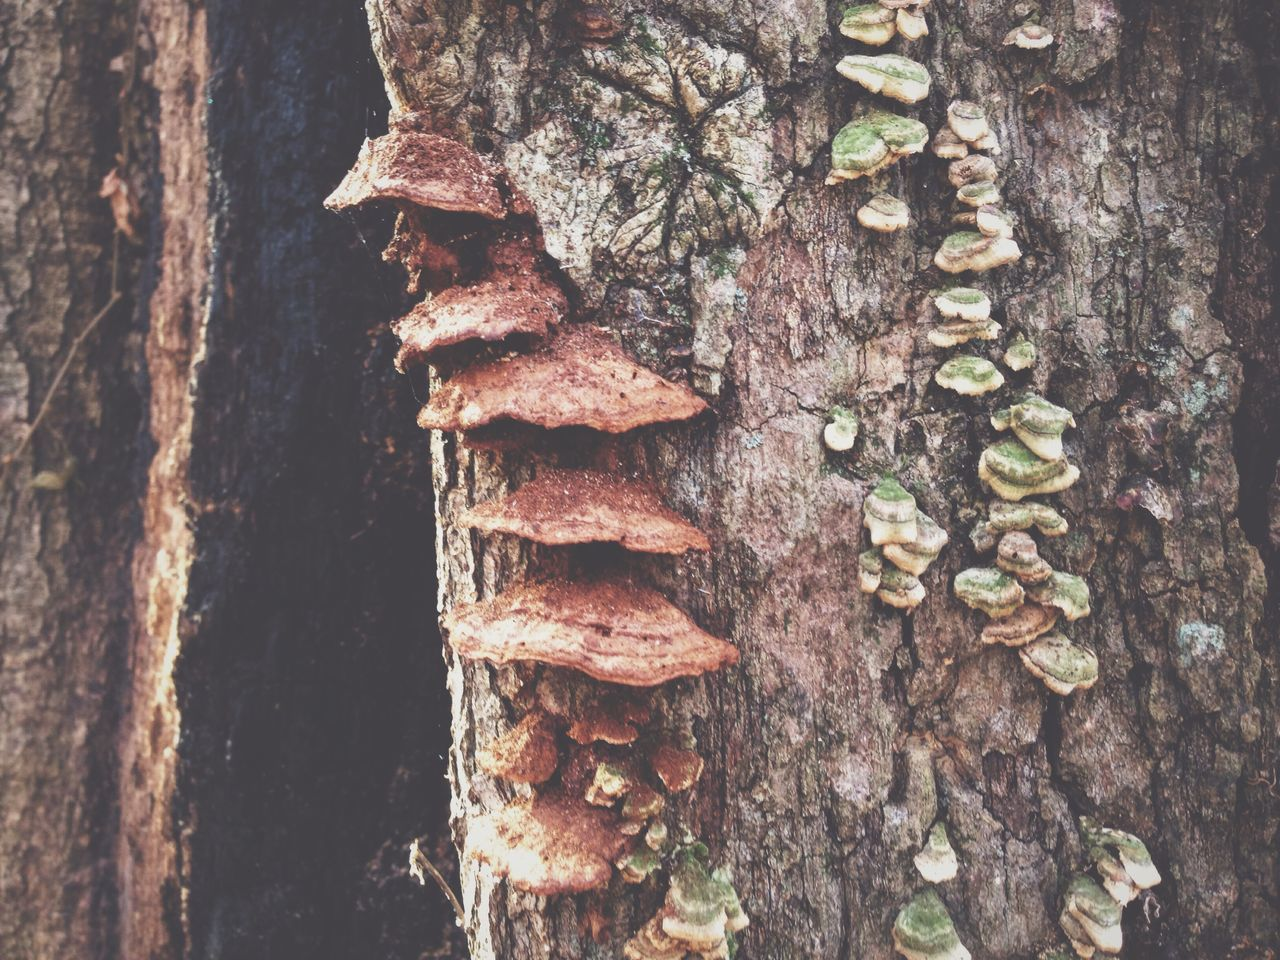 tree trunk, textured, rough, wood - material, day, no people, close-up, outdoors, fungus, bark, tree, nature